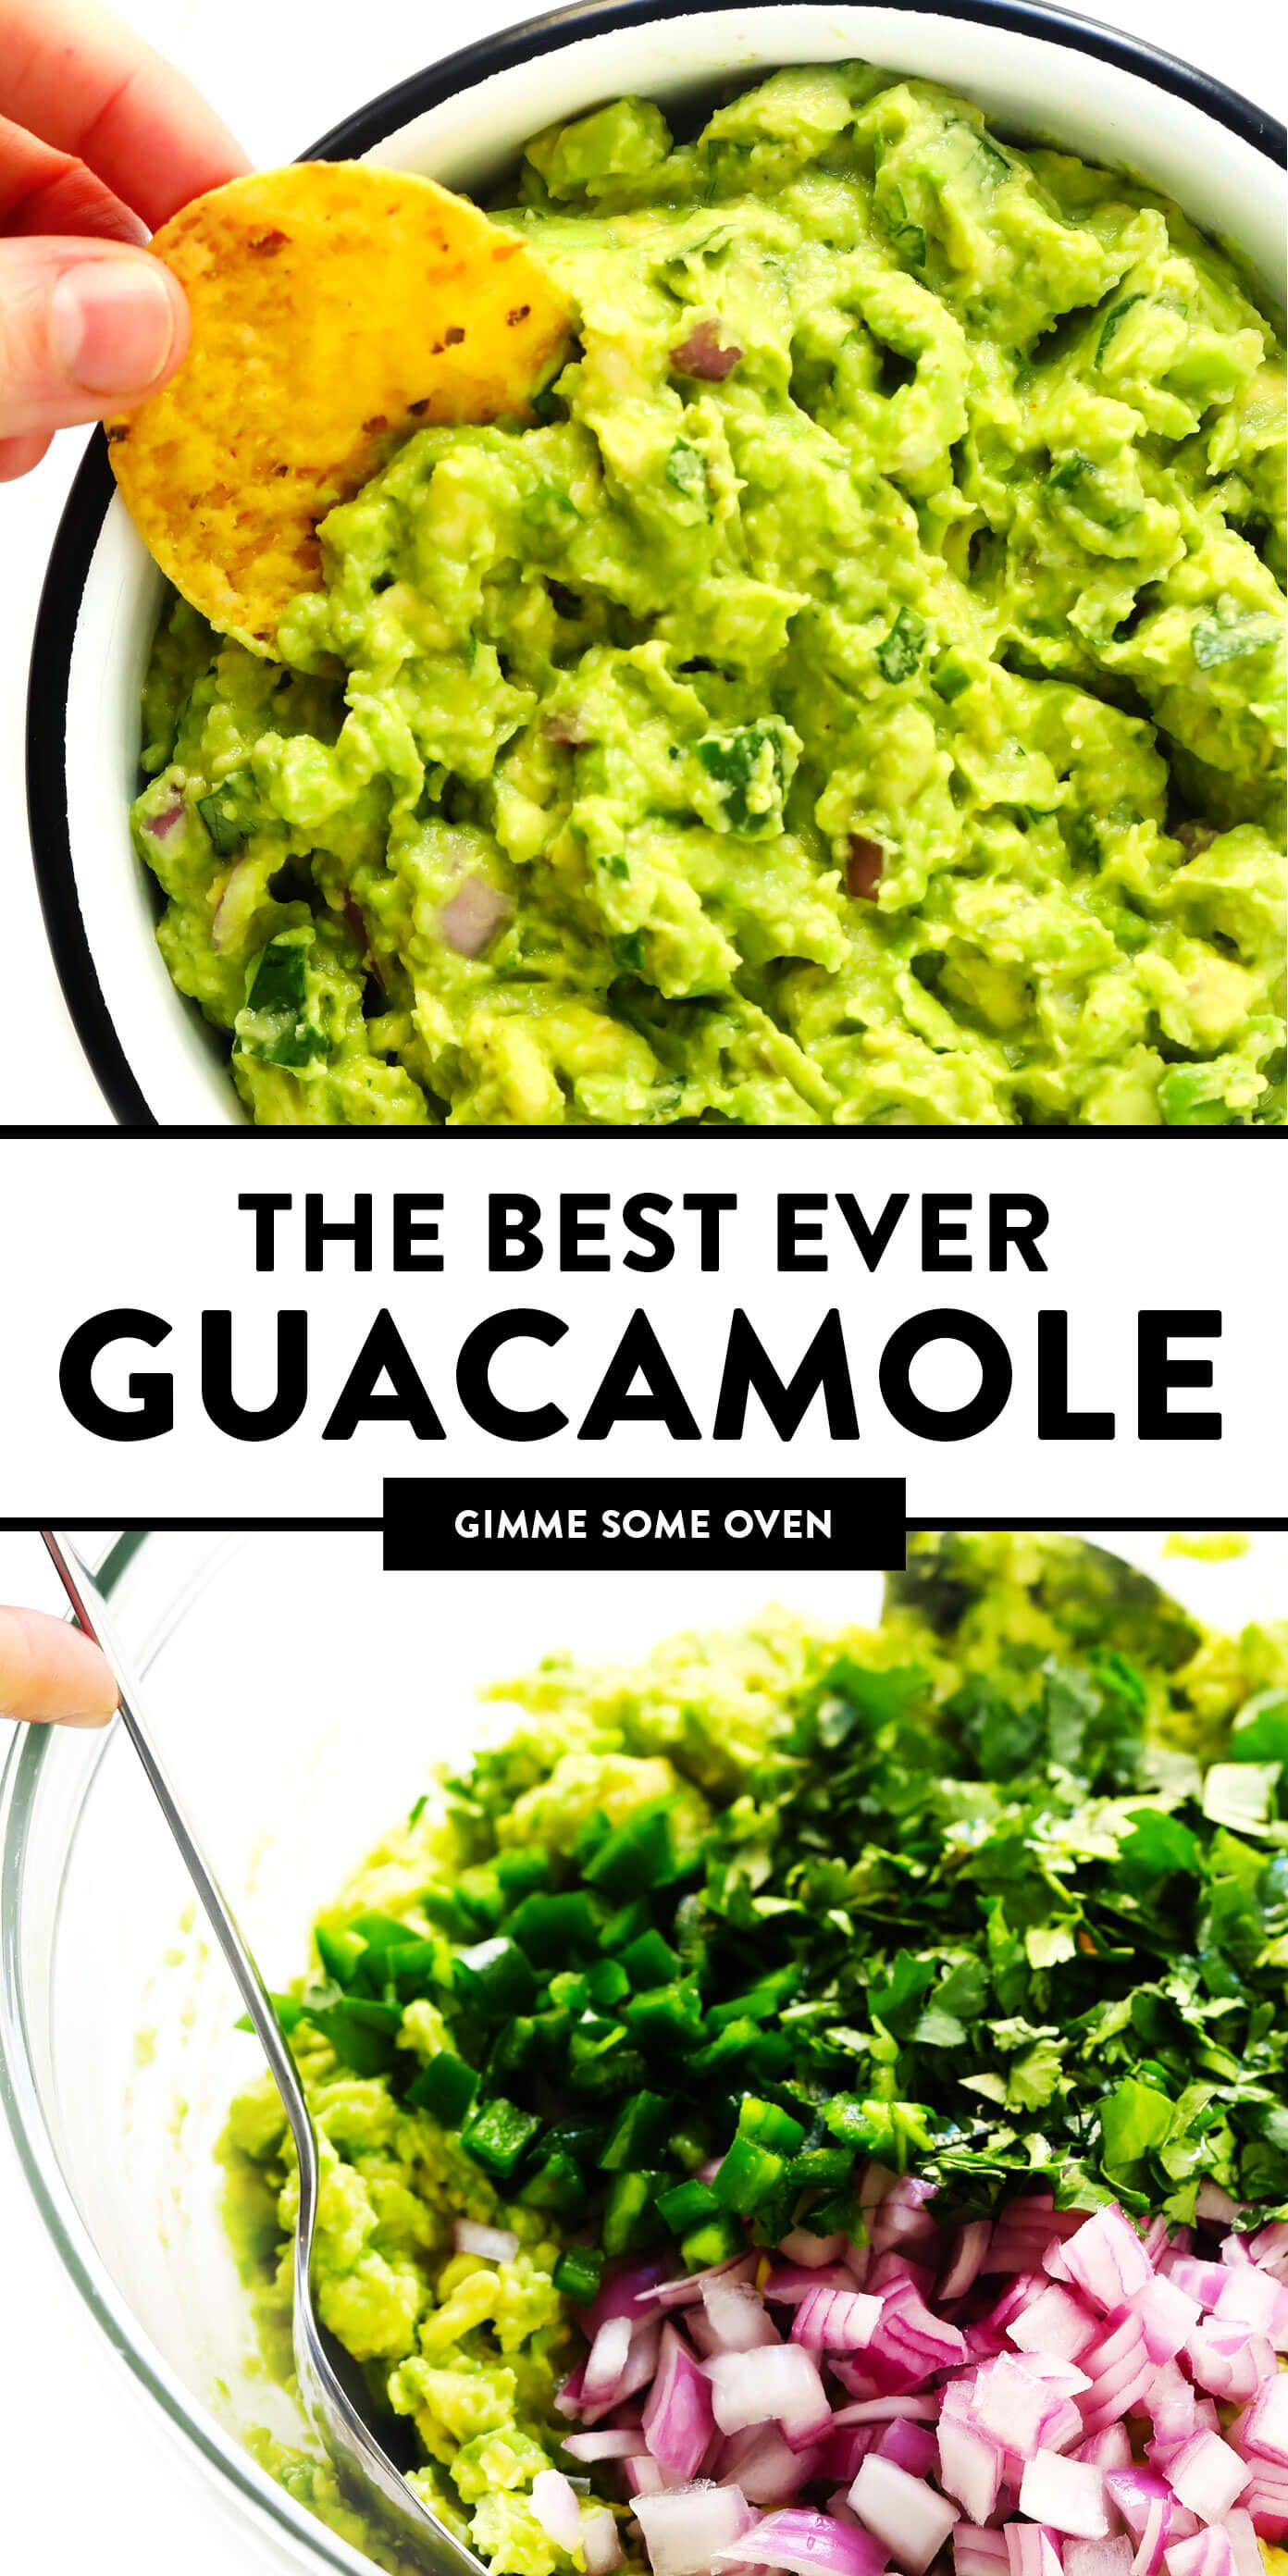 The BEST guacamole recipe!! It's quick and easy to make, and always the hit of a party. Serve it up